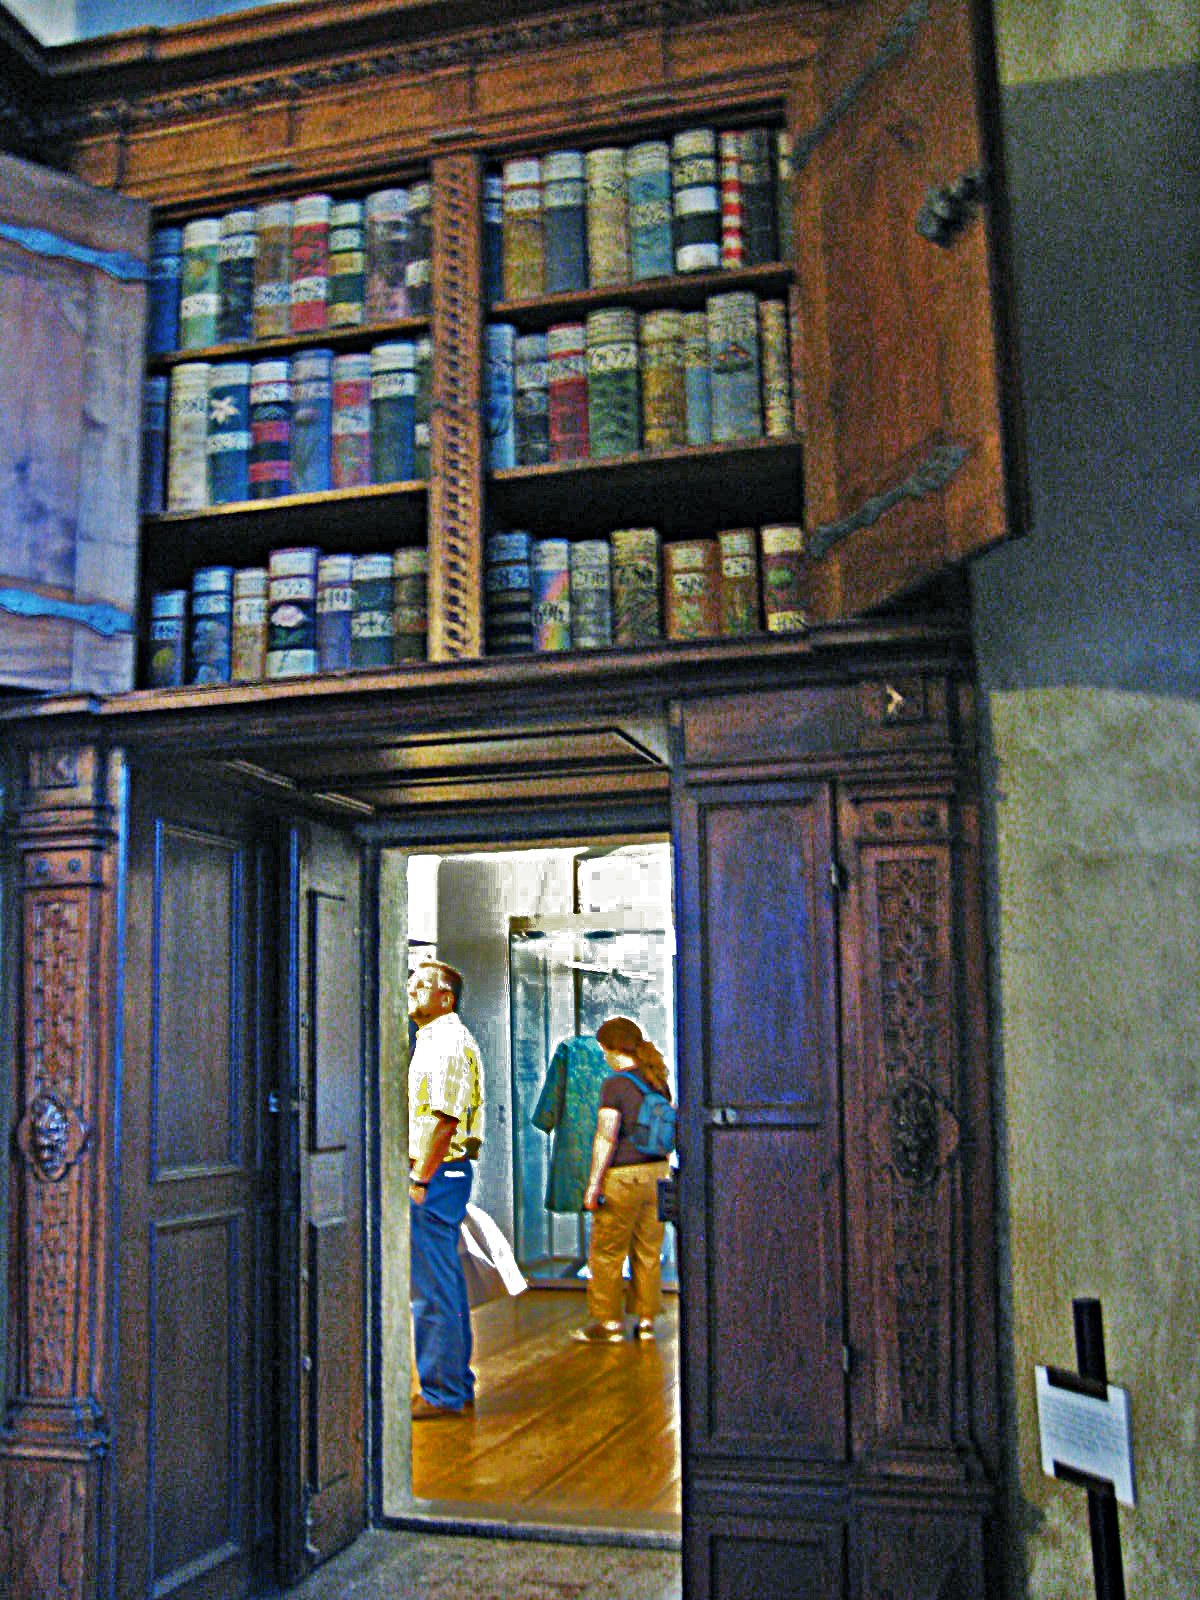 Bookcase door, Prague Castle